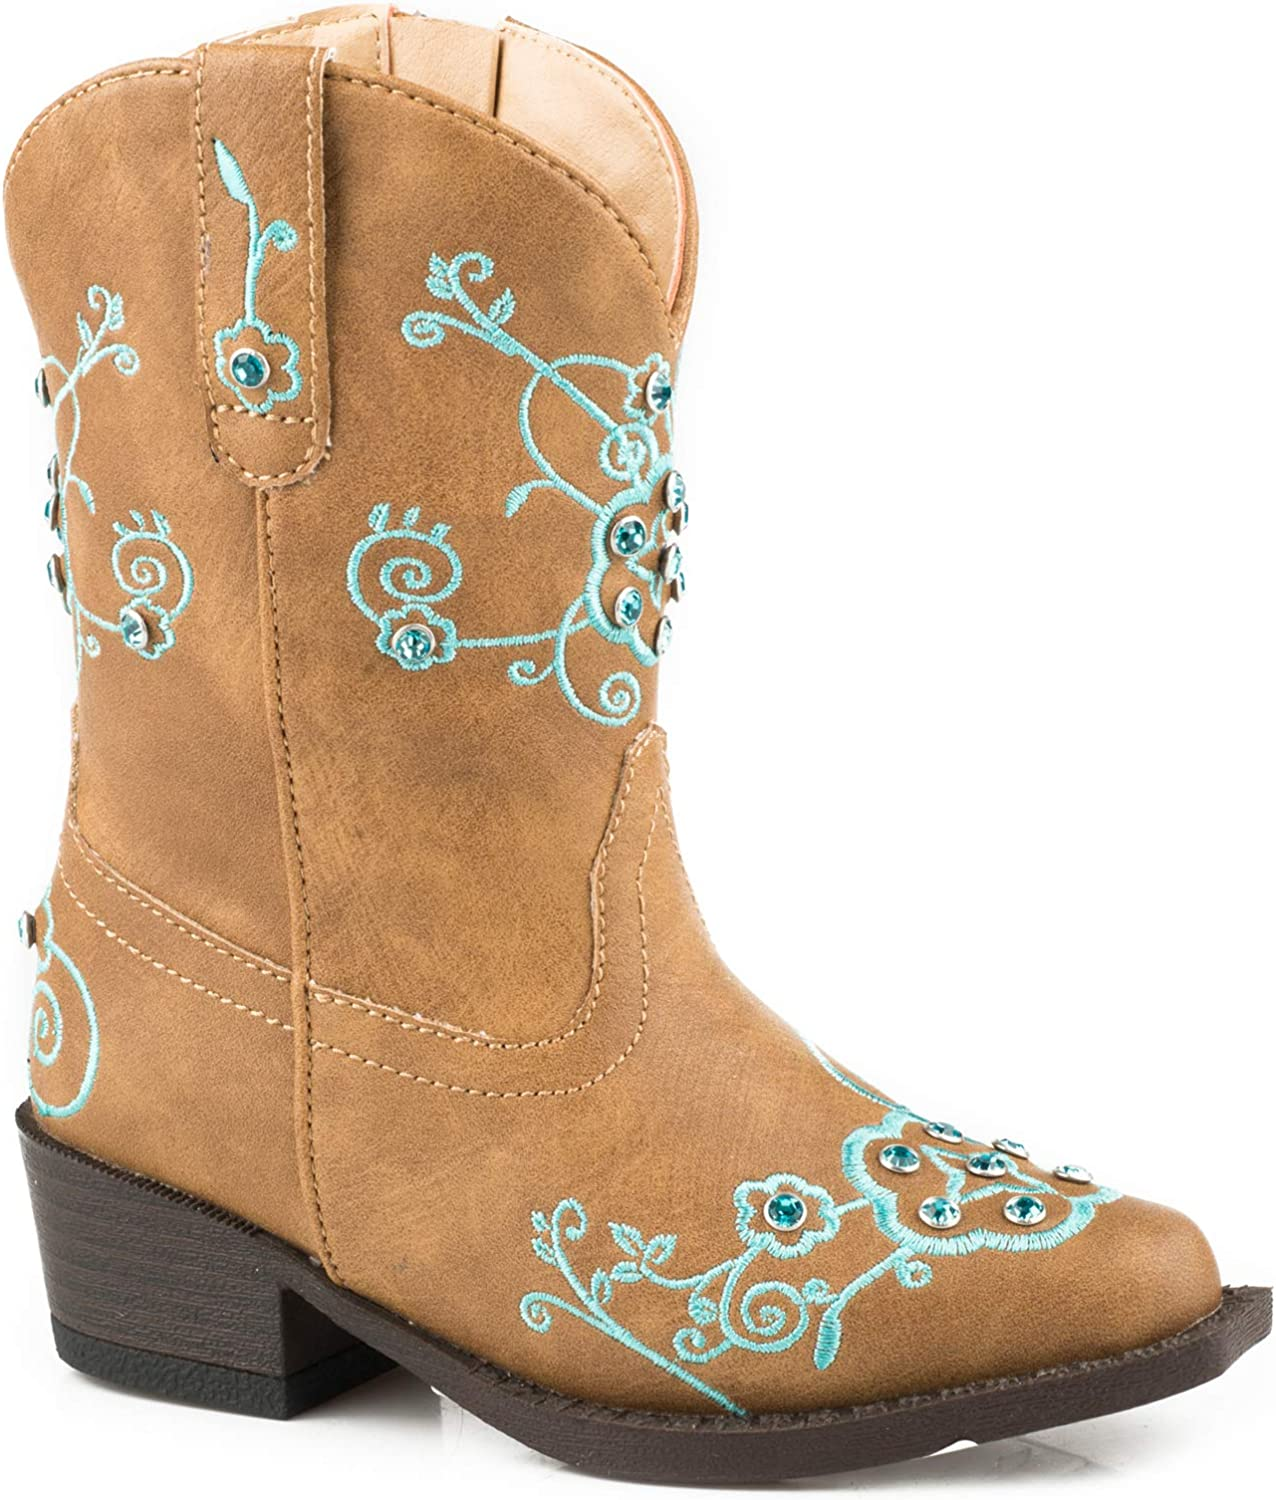 Brand new ROPER Toddler Flower Sparkles Toe Portland Mall Square Boots